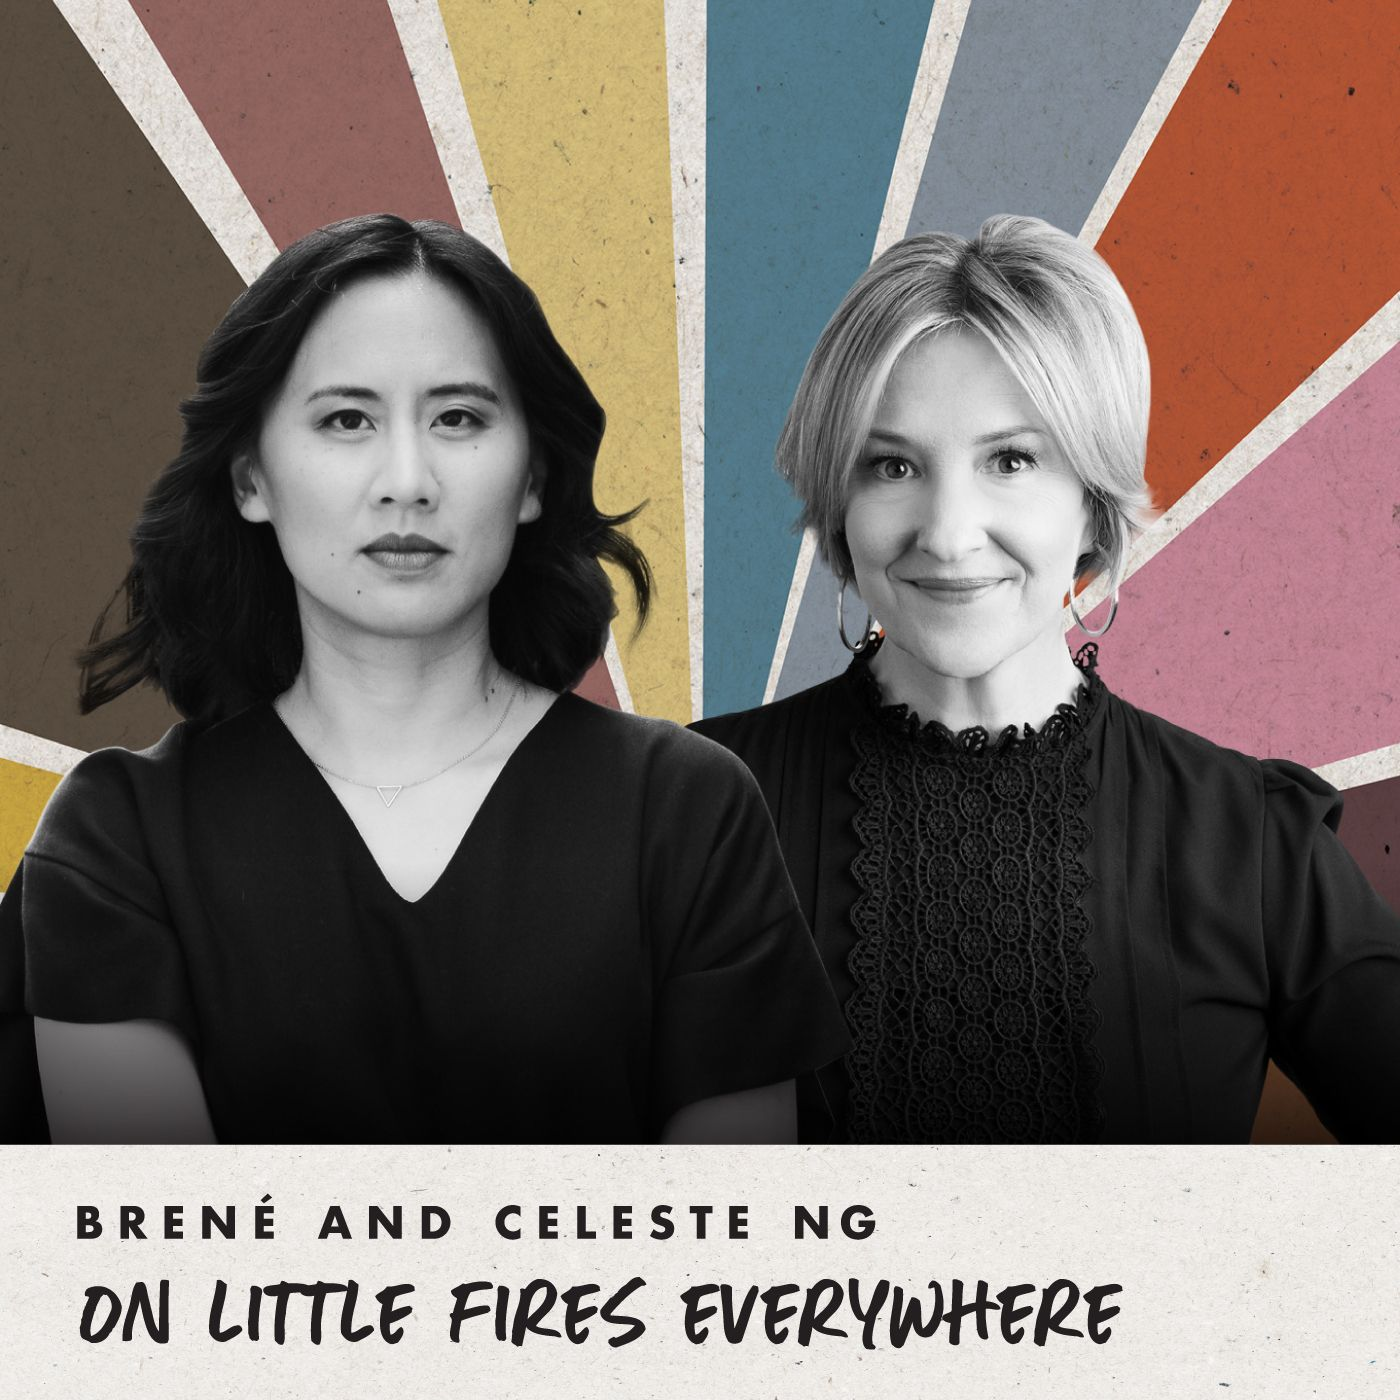 Brené and Celeste Ng on Little Fires Everywhere